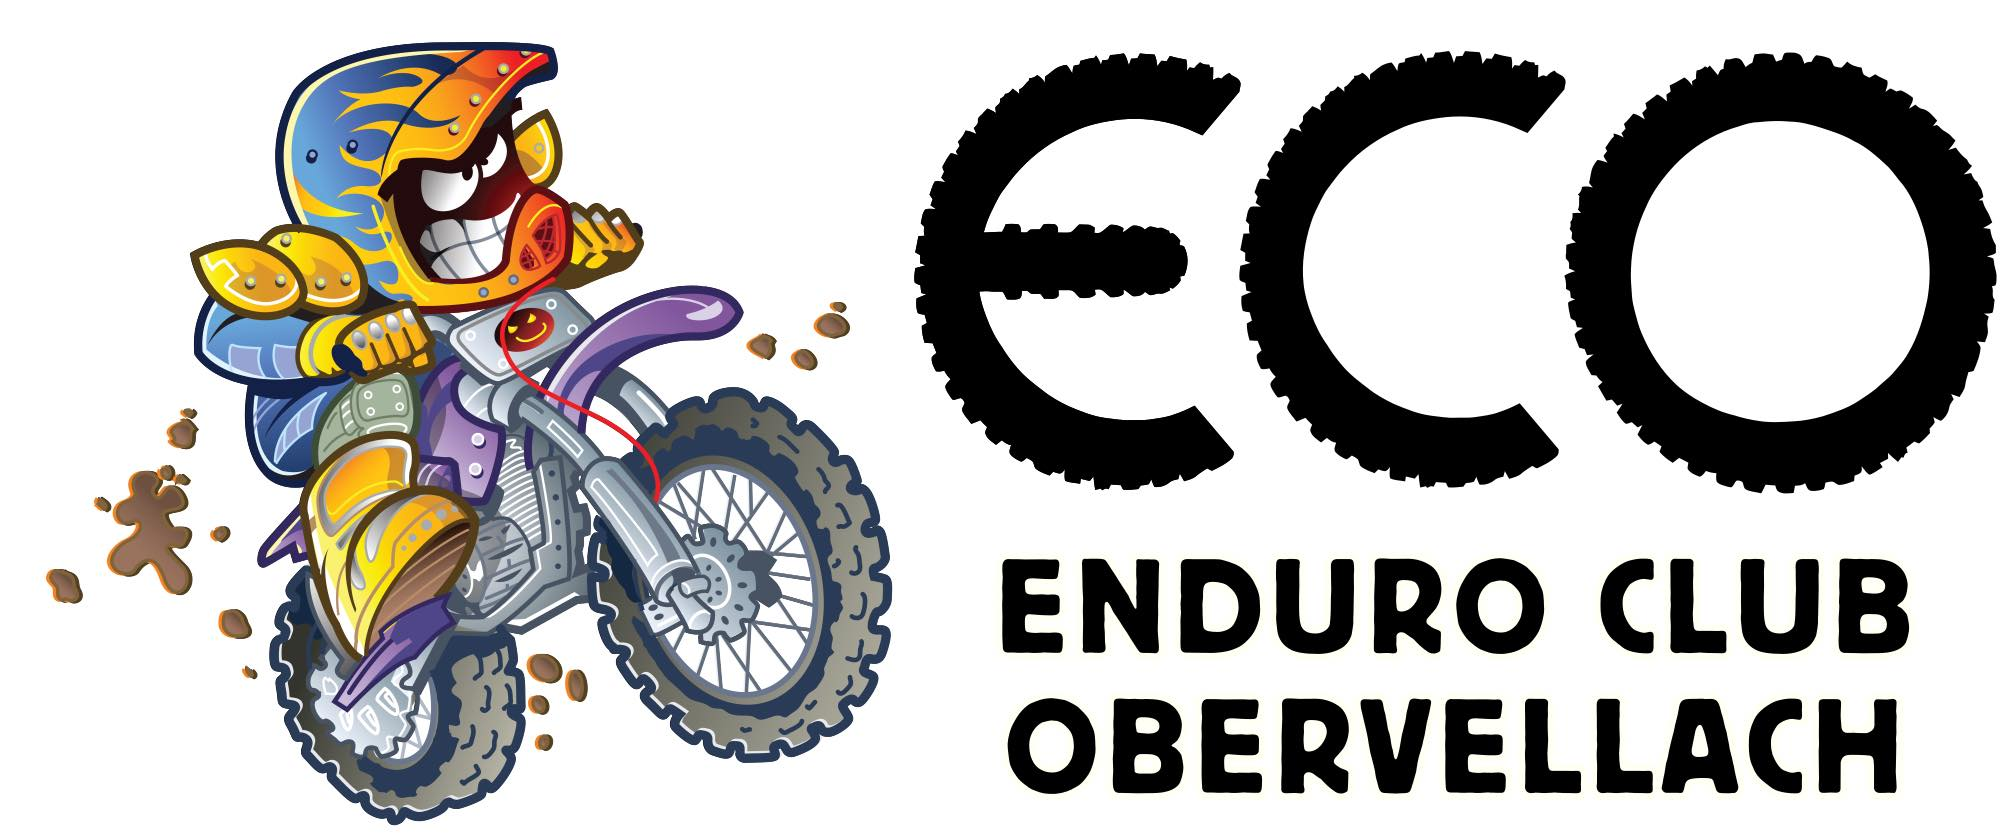 Enduro Club Obervellach